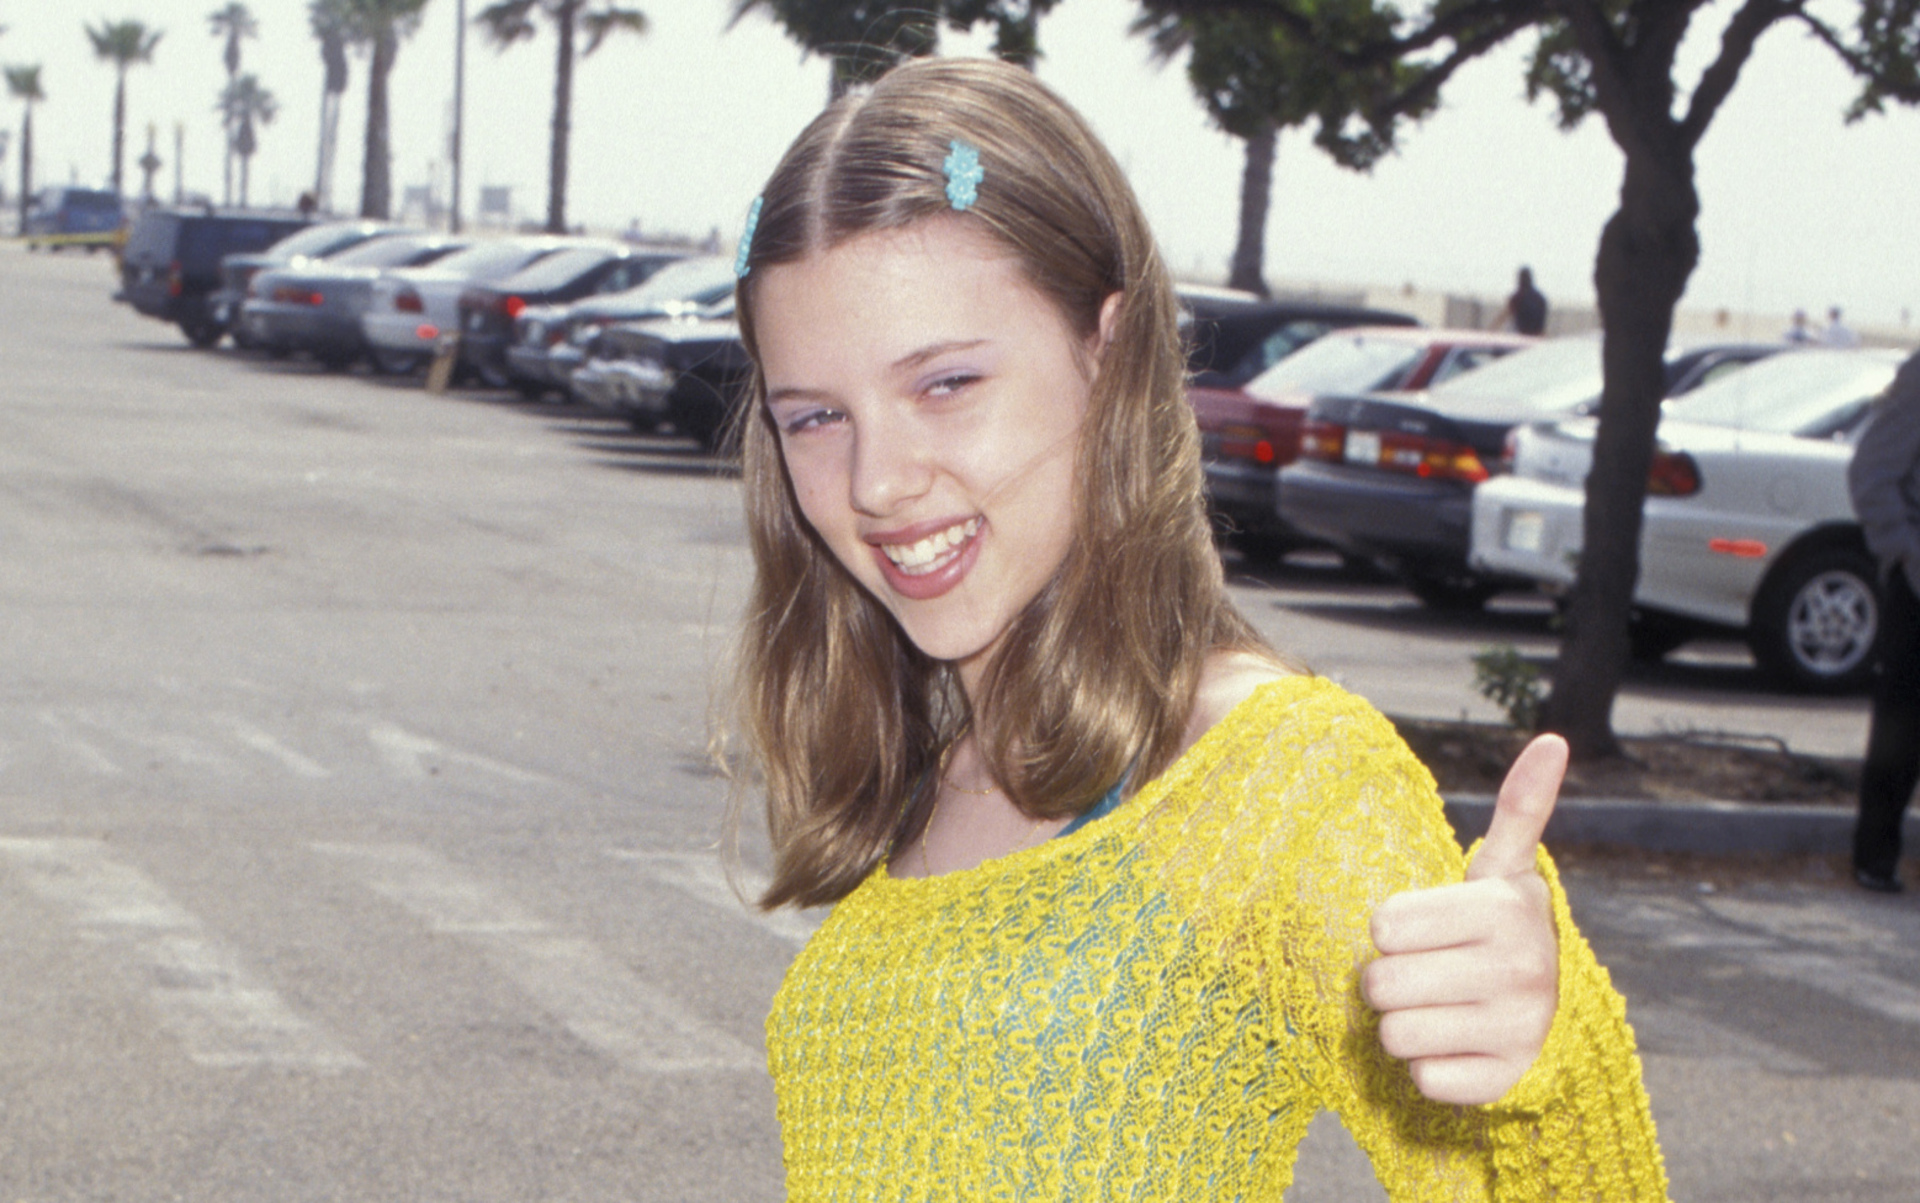 How Scarlett Johansson changed over time: from teen actress to Black Widow